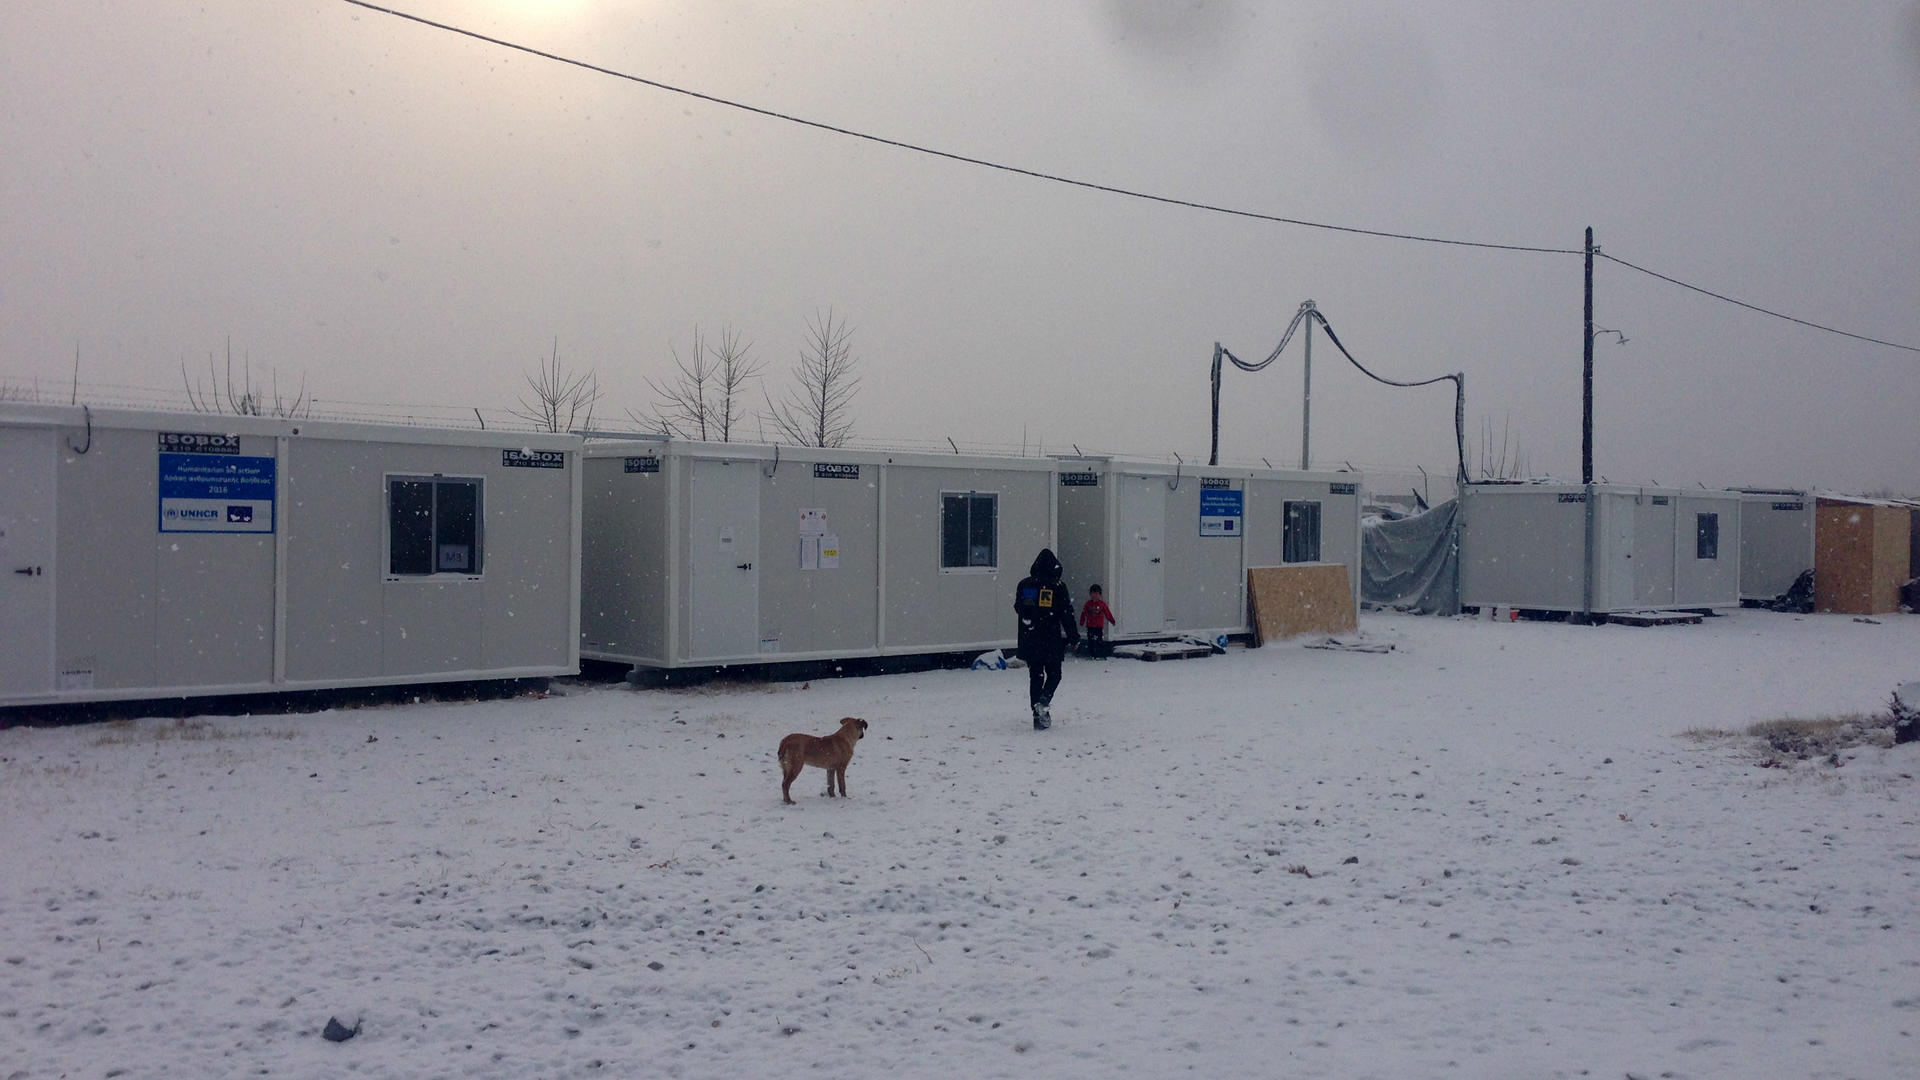 An IRc aid worker in a parka walks toward refugee shelters in Alexandria in the snow.